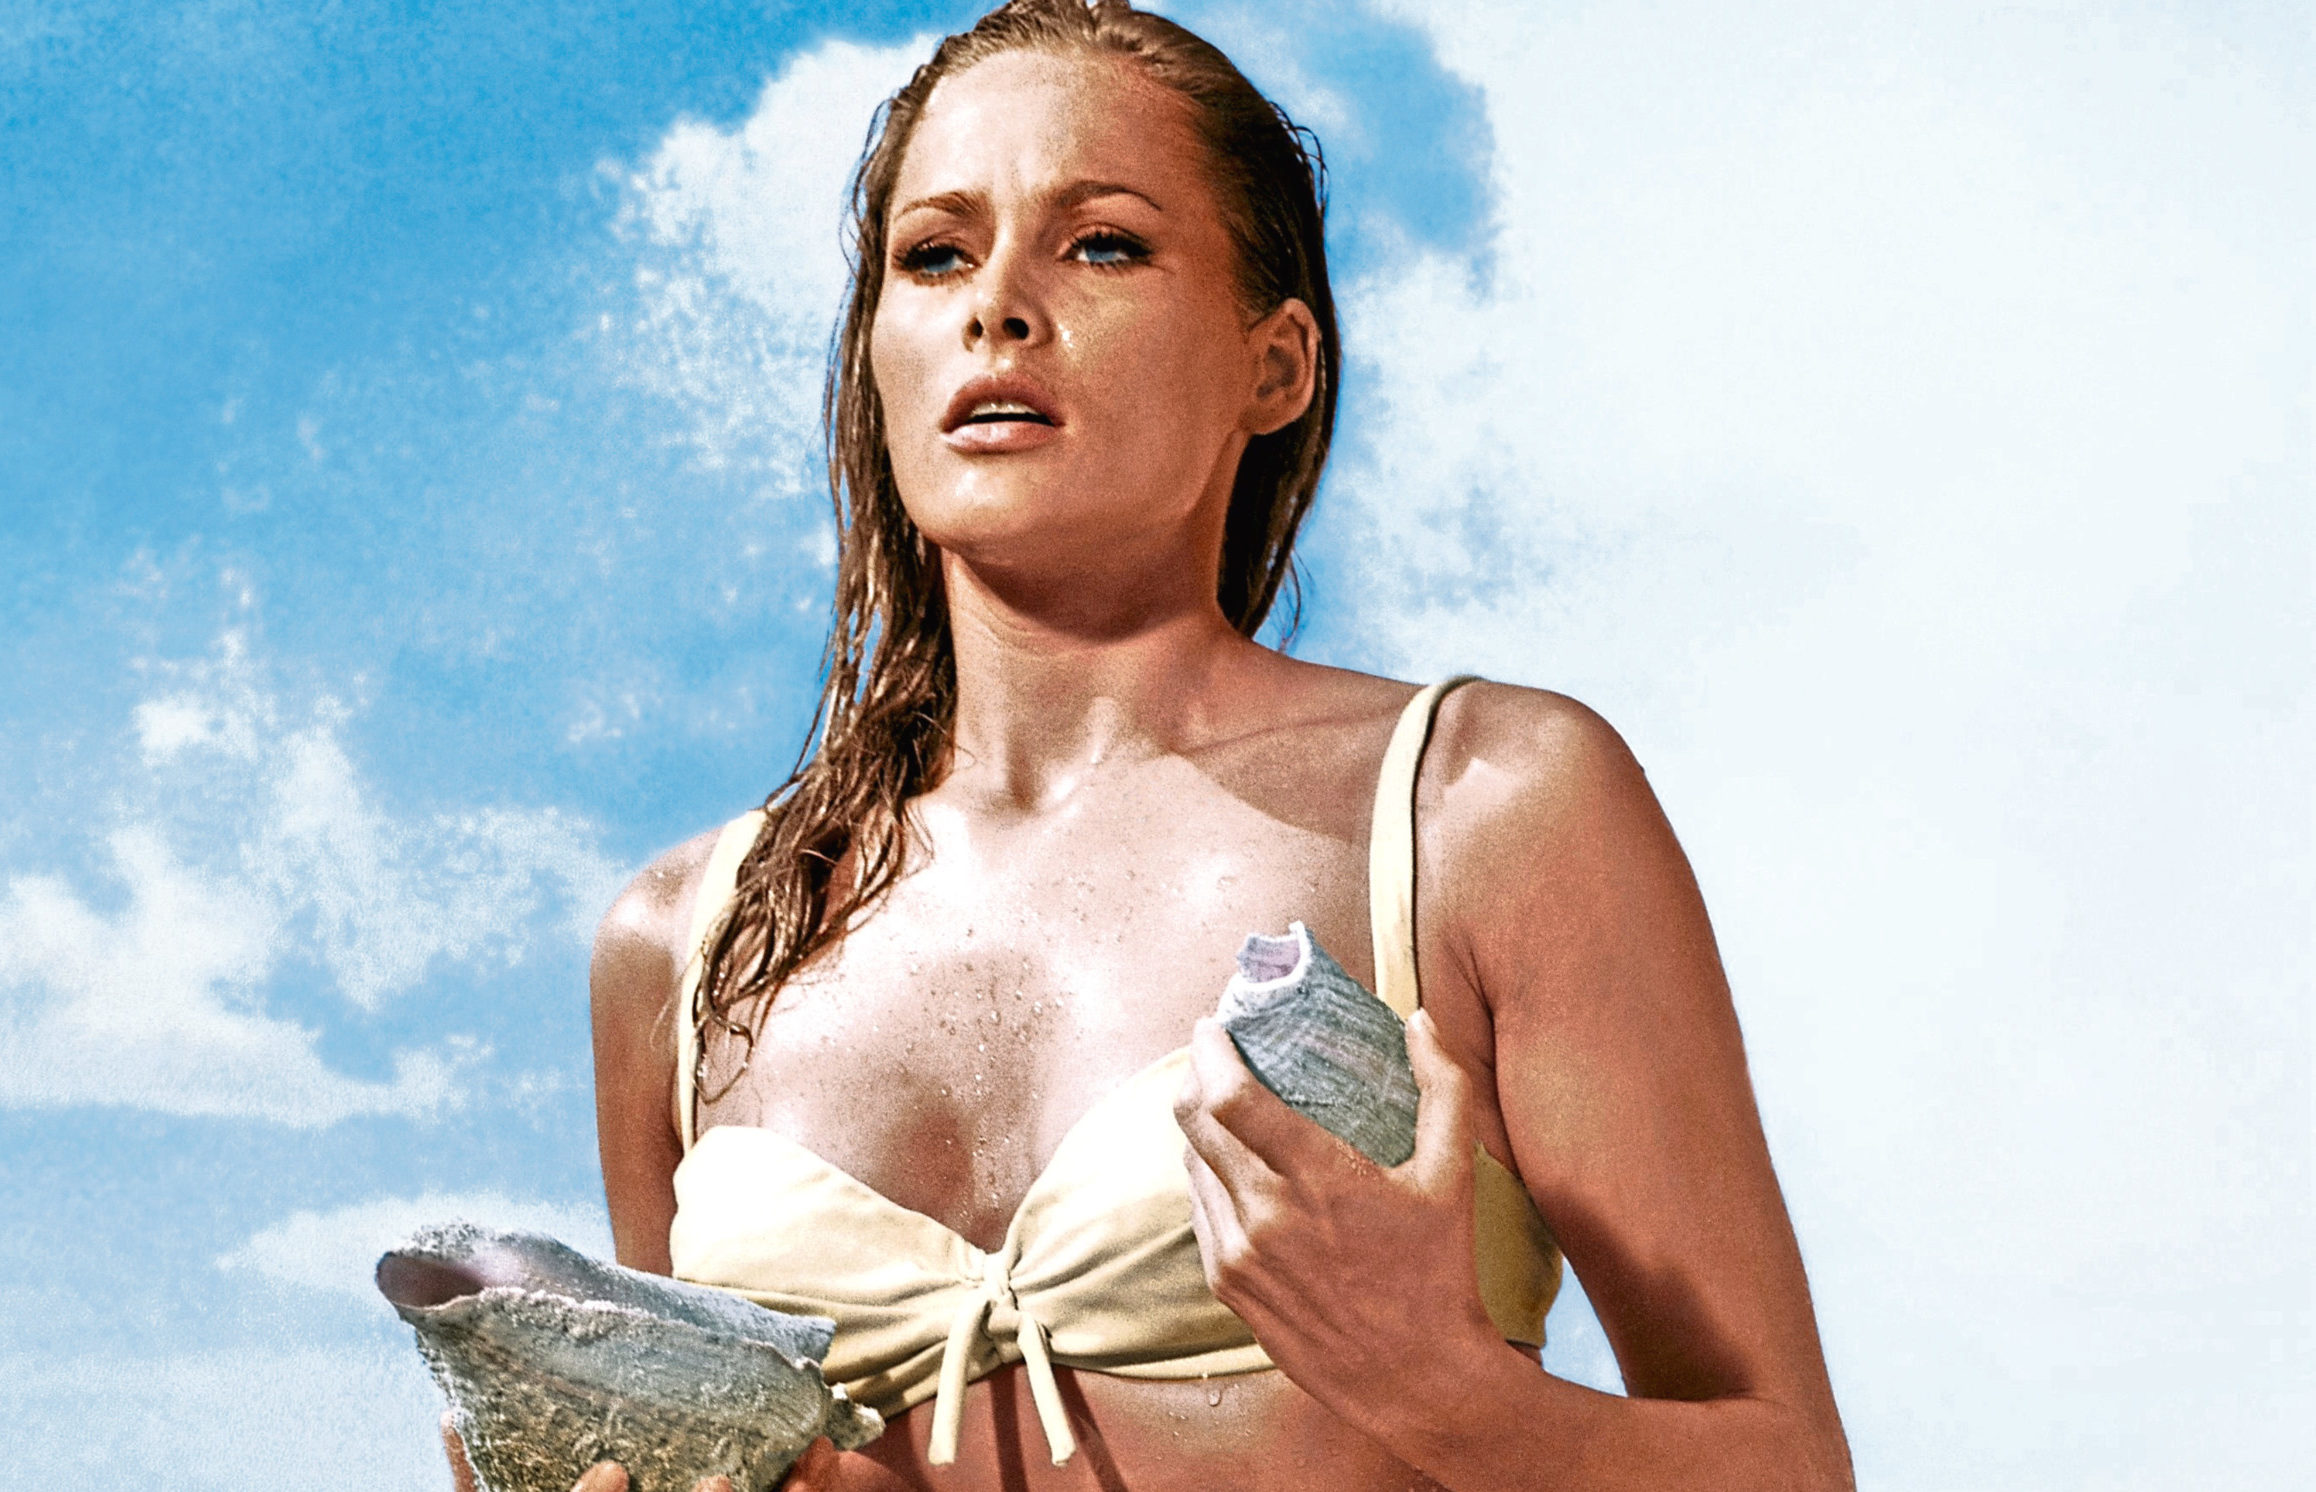 Ursula Andress as Honey Ryder in Dr No, 1962 (Allstar/UNITED ARTISTS)